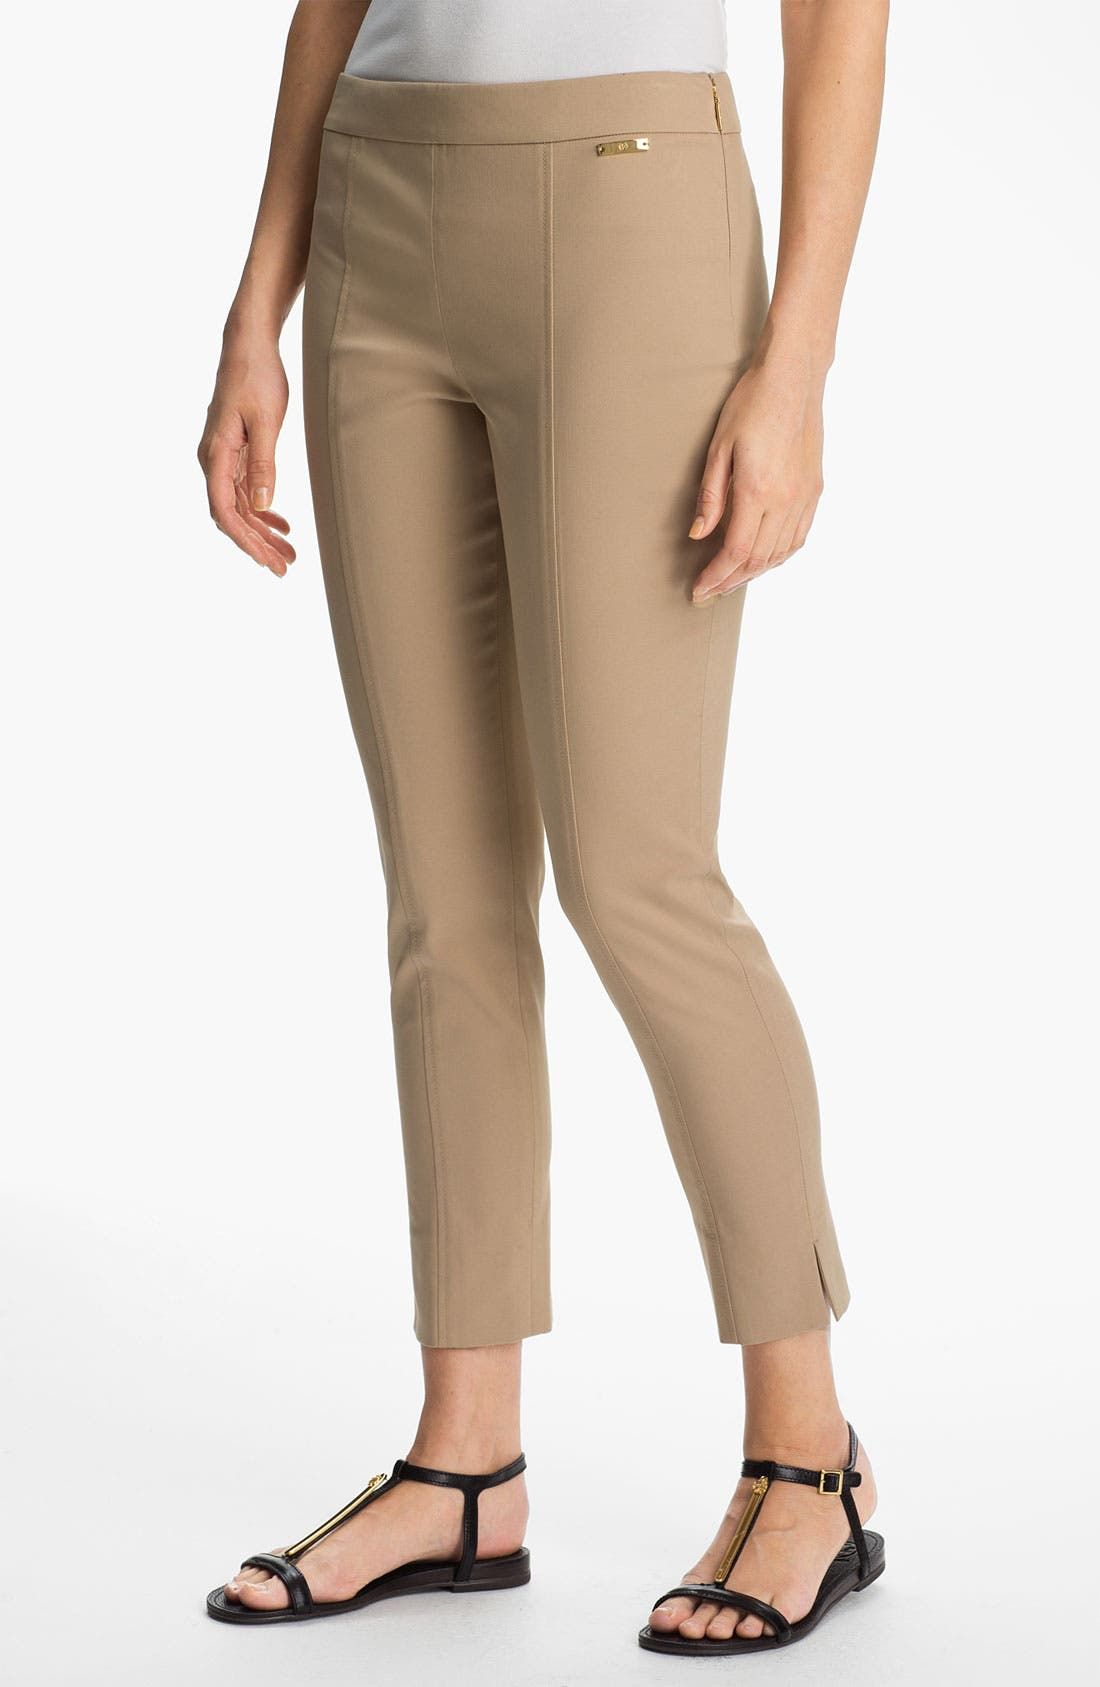 Alternate Image 1 Selected - Tory Burch 'Callie' Ankle Pants